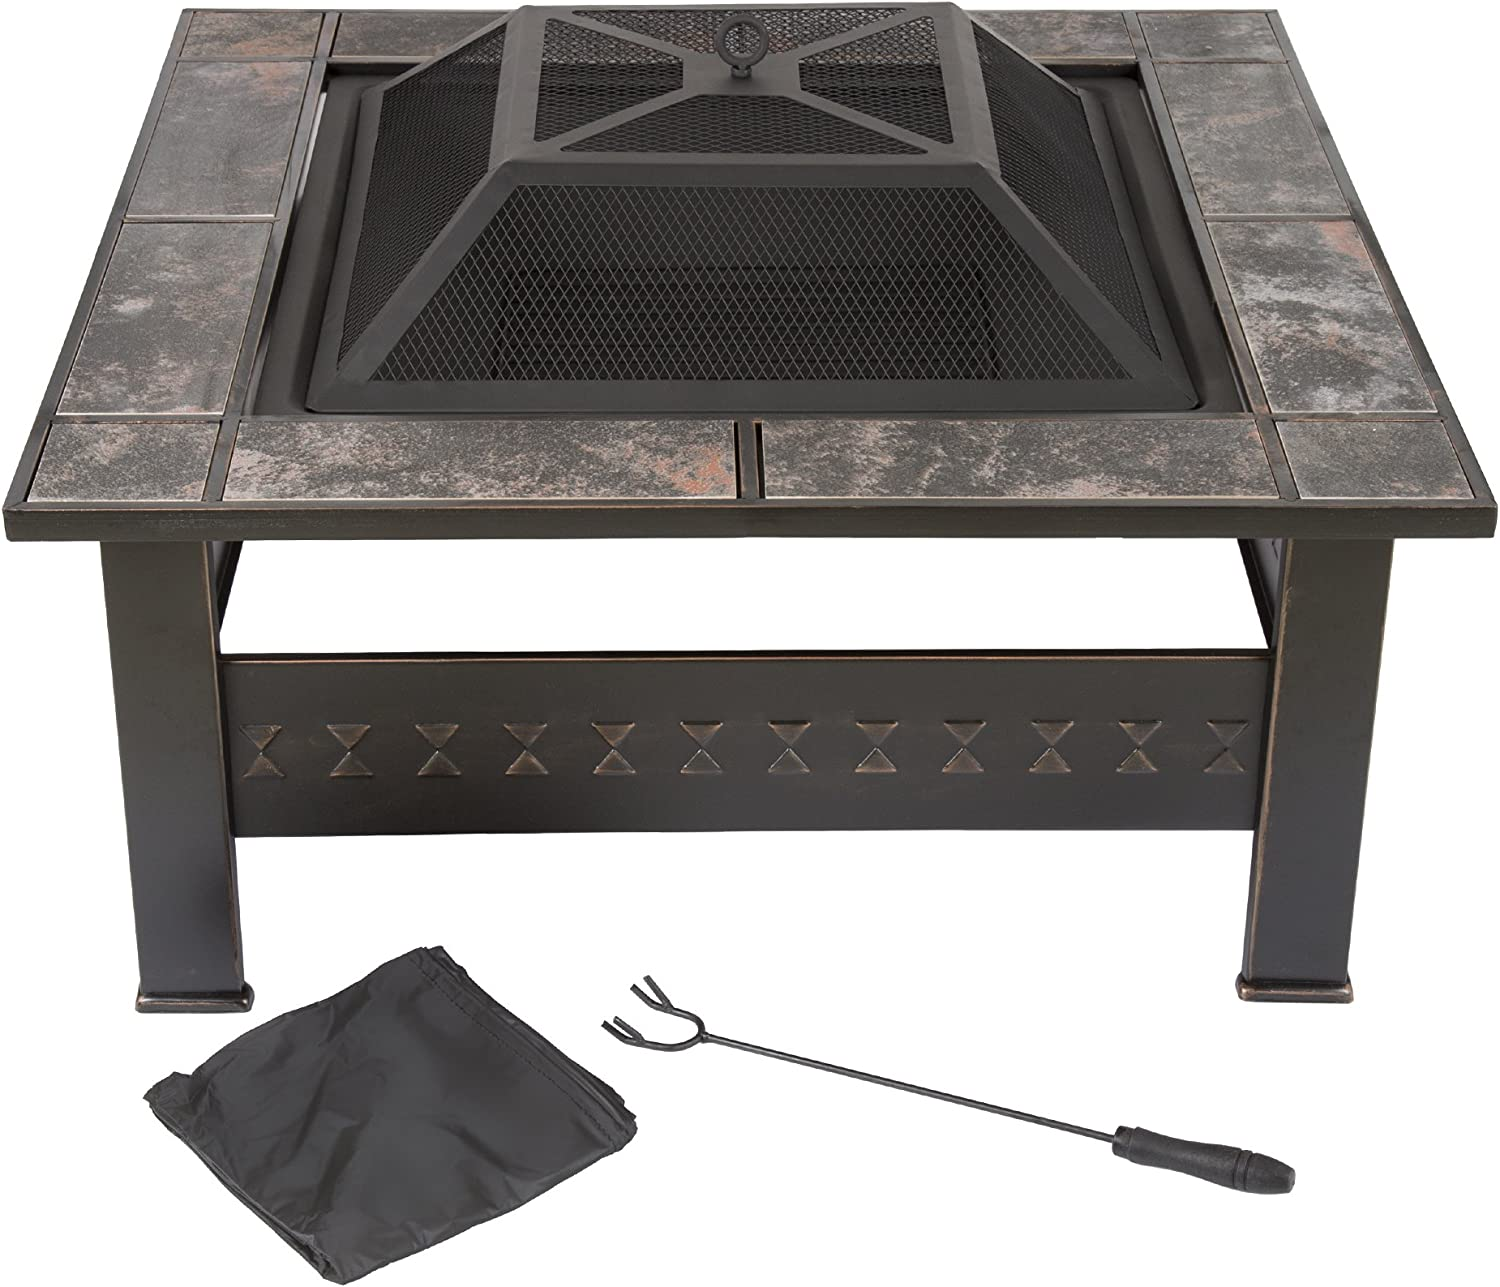 Fire Pit Set, Wood Burning Pit -Includes Screen, Cover and Log Poker- Great for Outdoor and Patio, 32 Inch Marble Tile Square Firepit by Pure Garden